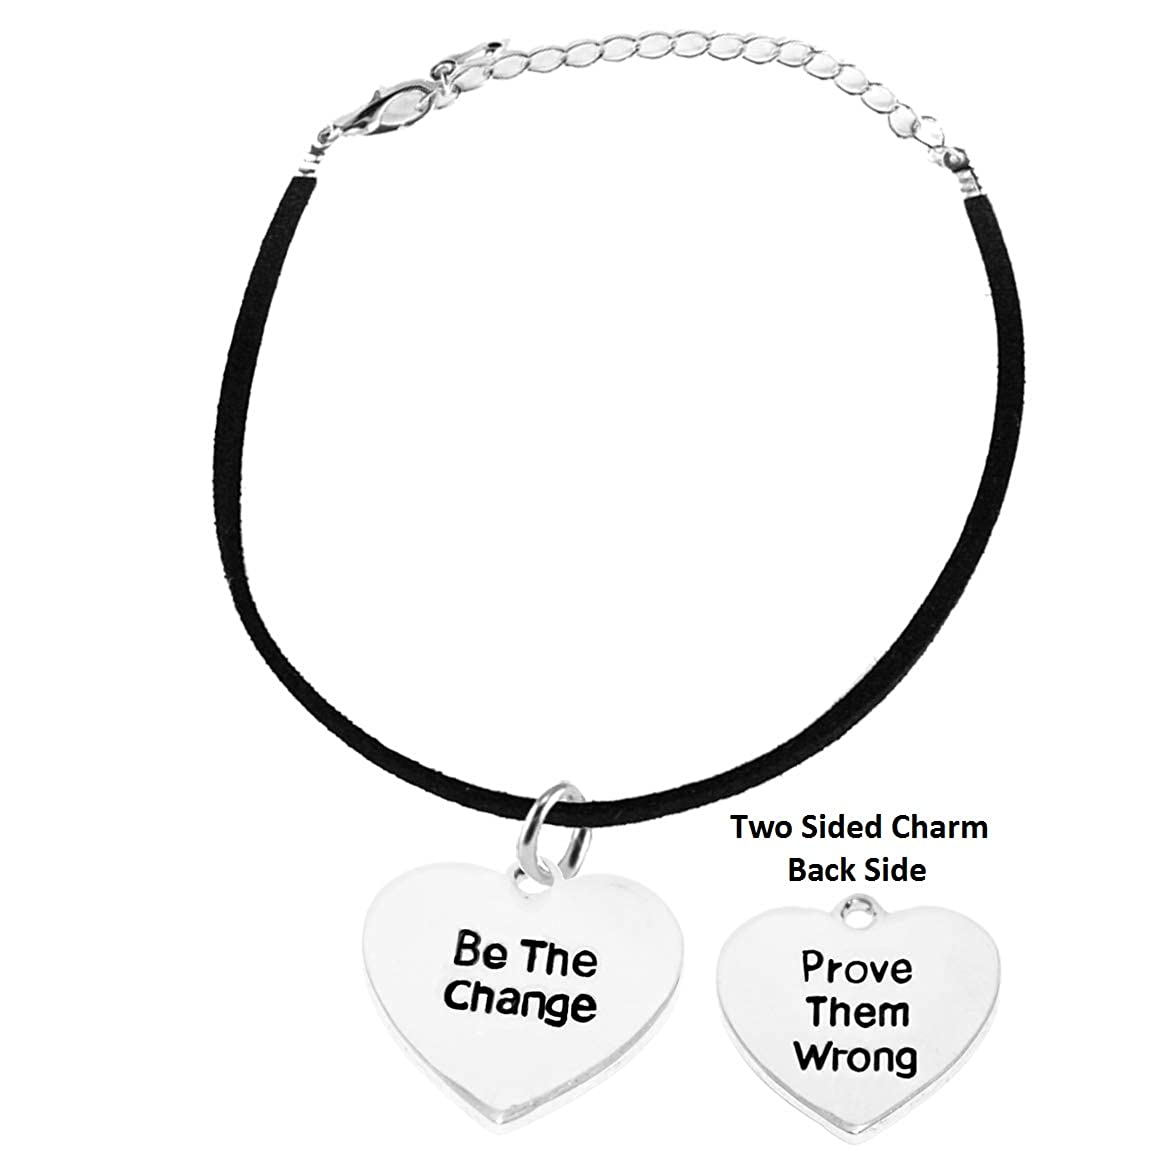 Cardinali Jewelry Be The Change On Black Suede Adjustable Bracelet Hypoallergenic Safe-Nickel Lead and Cadmium Free Prove Them Wrong